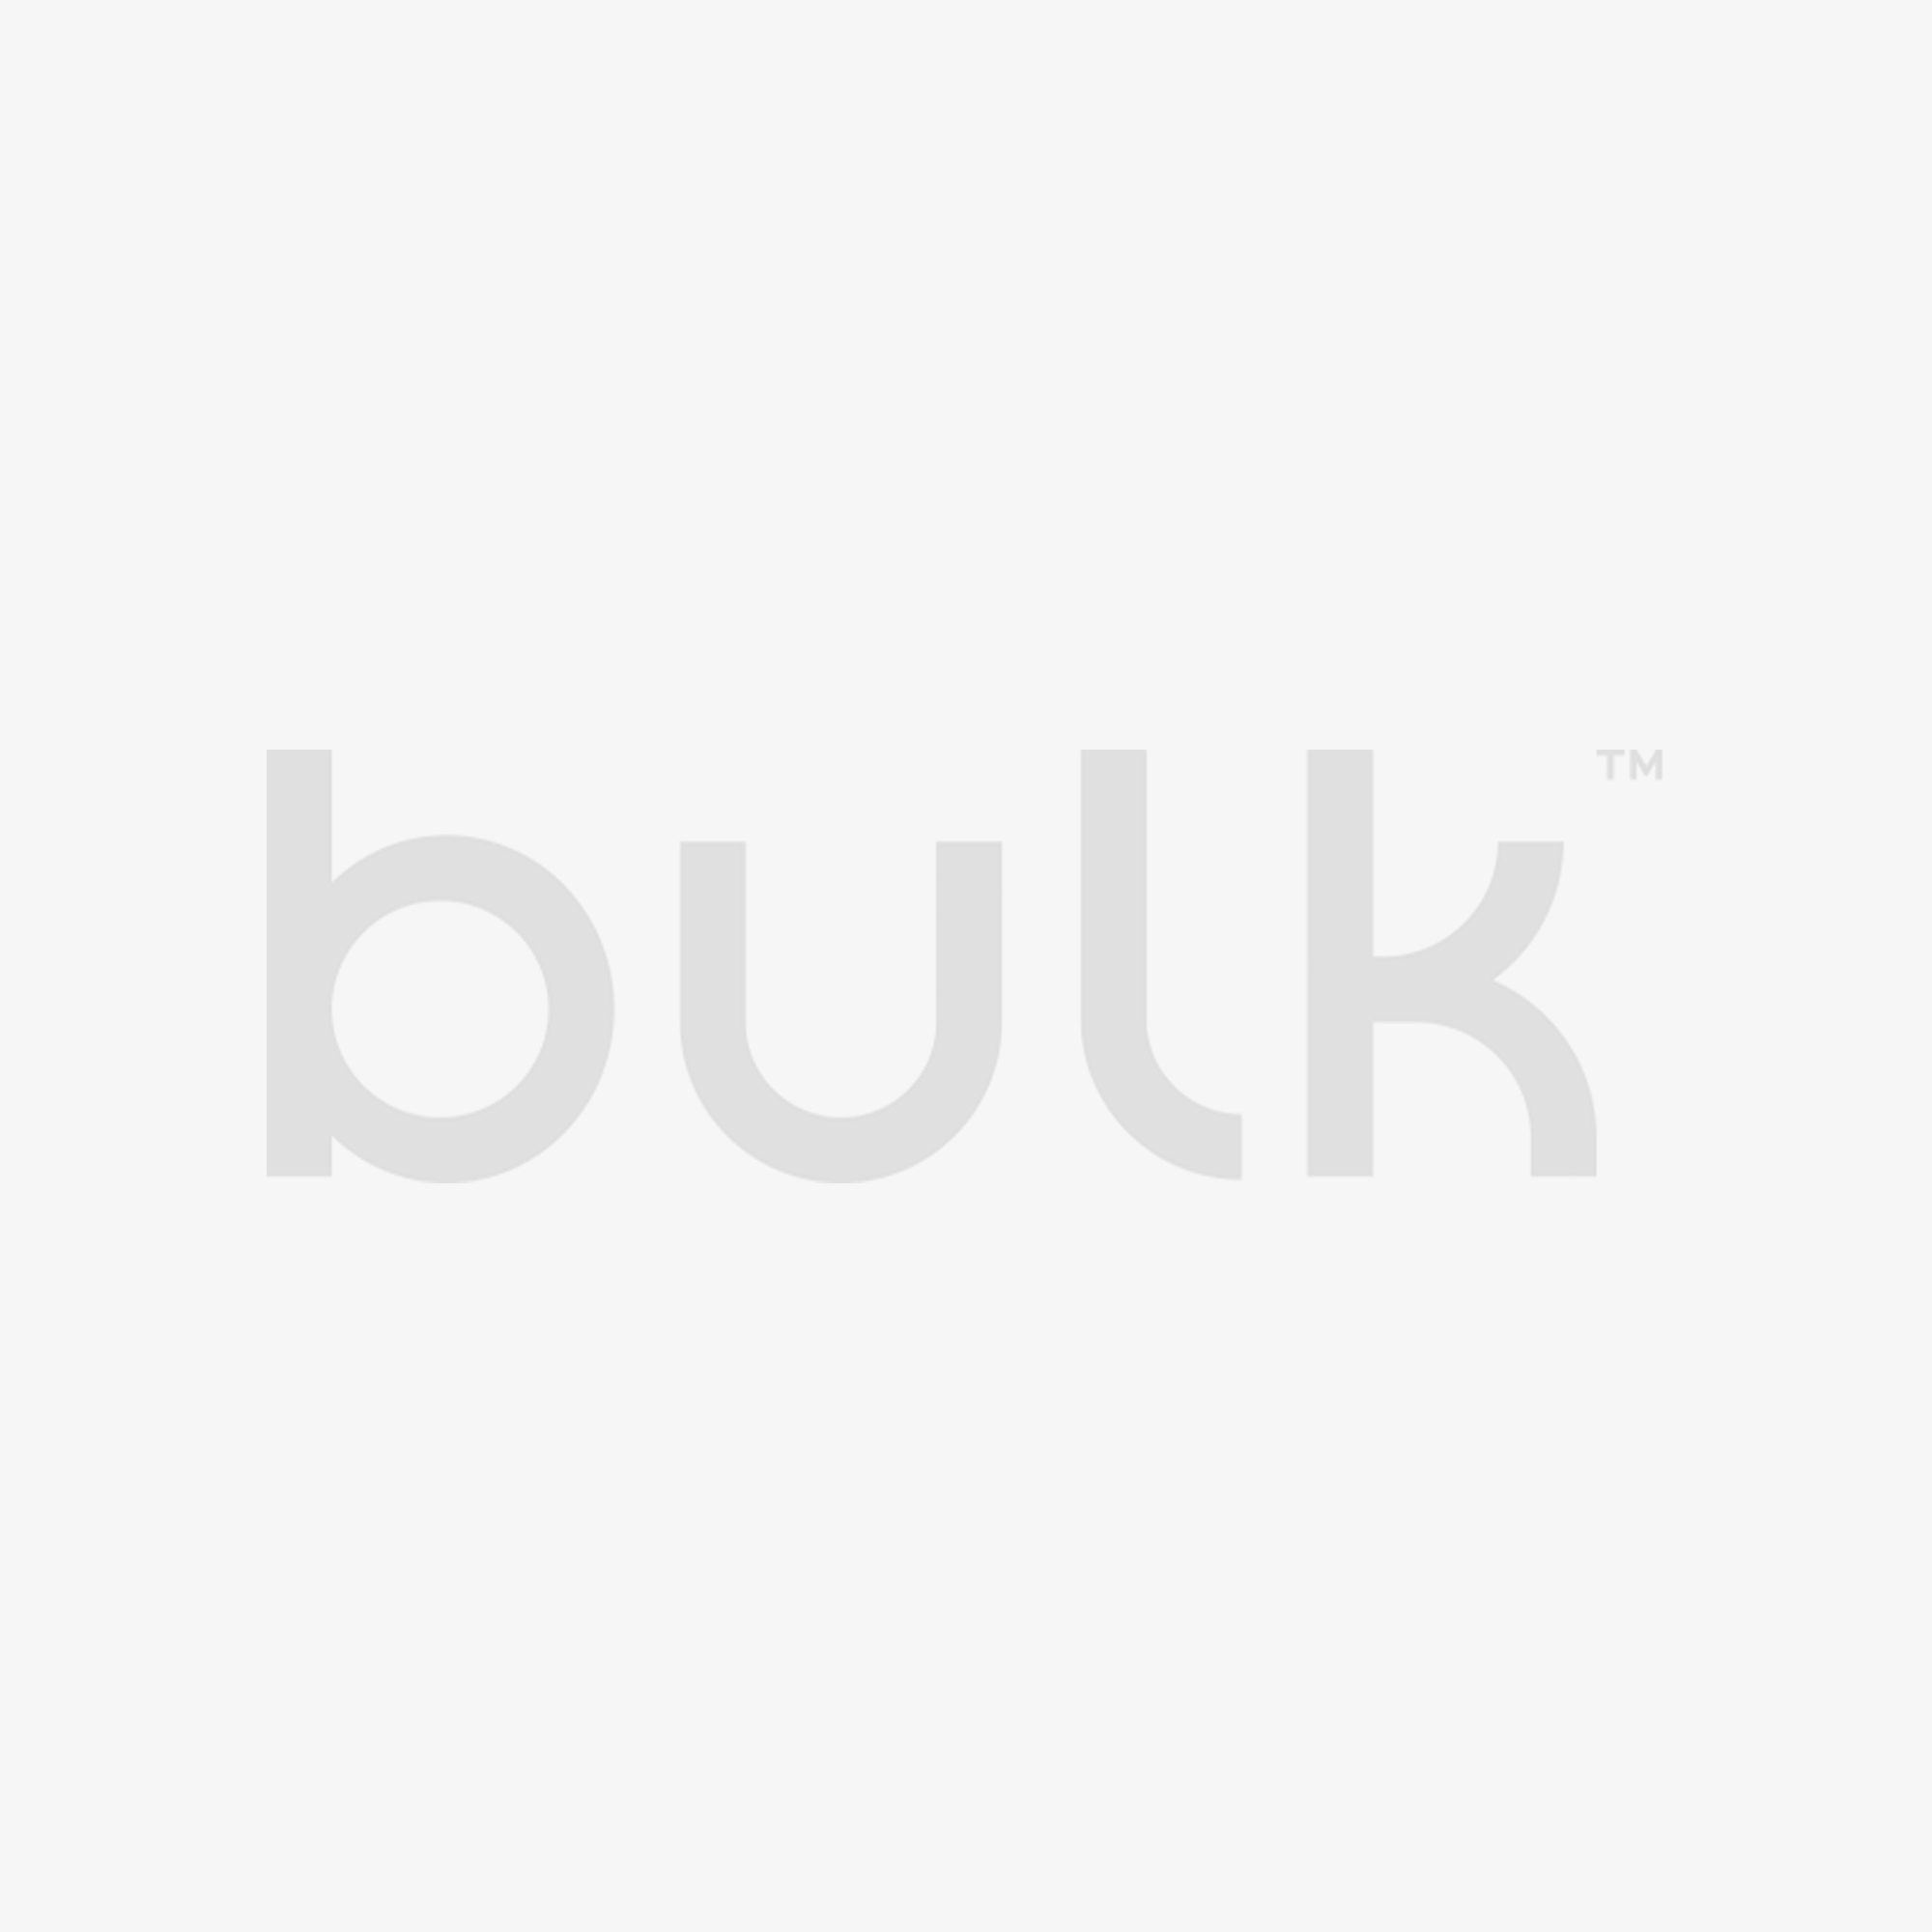 BULK POWDERS™ T-Shirt